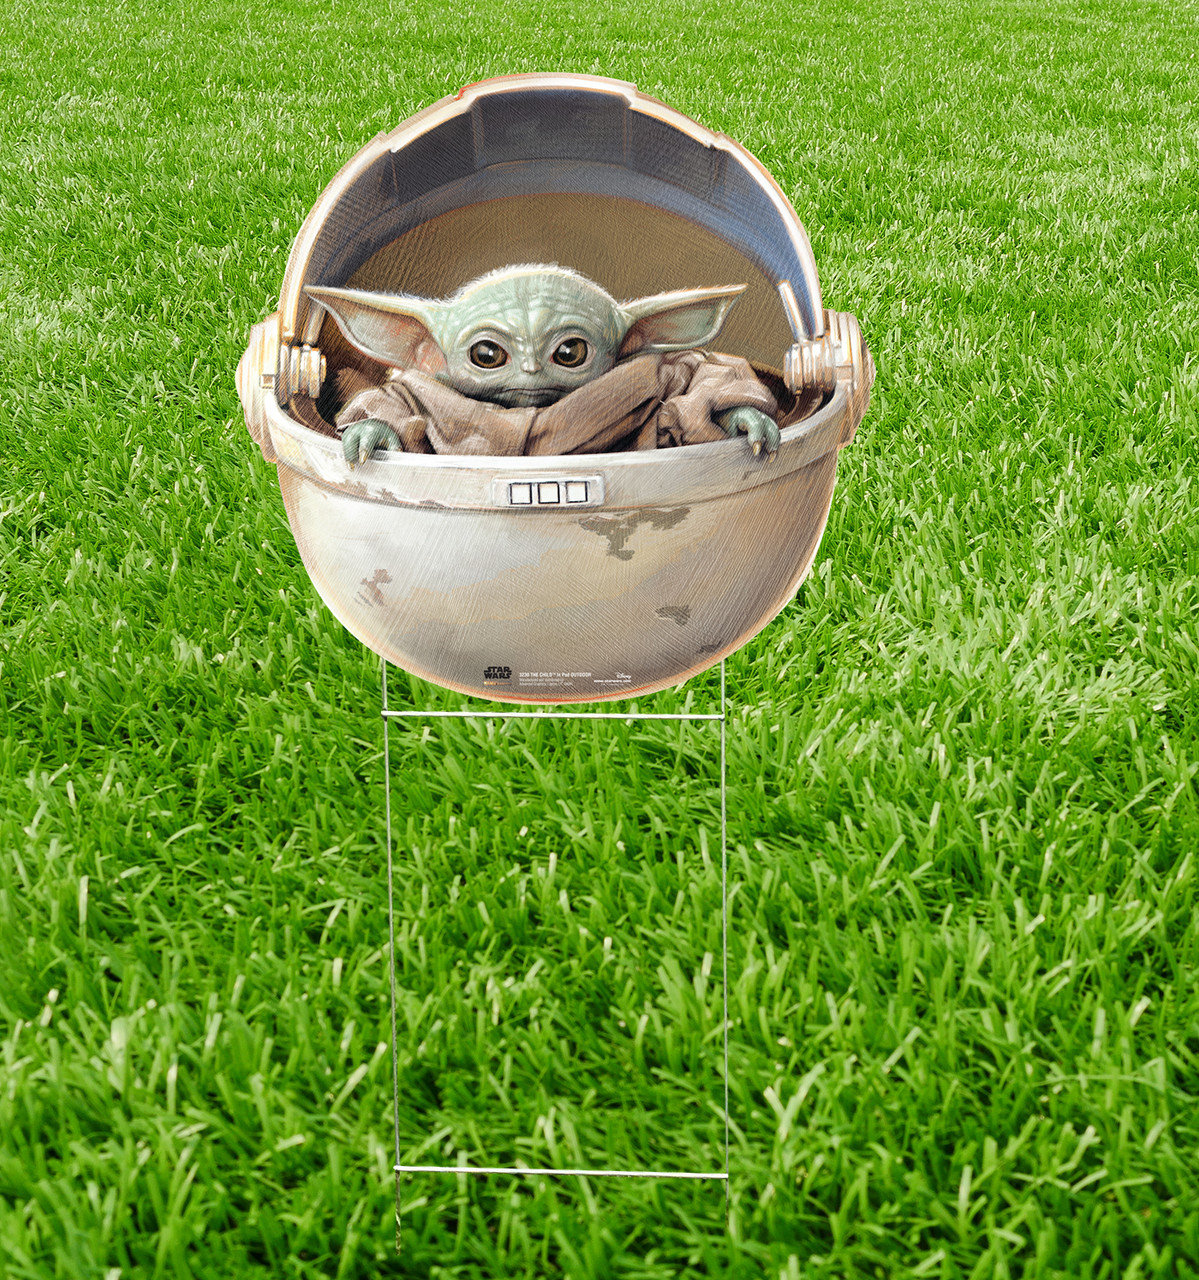 Outdoor coroplast standee of The Child in POD outdoor